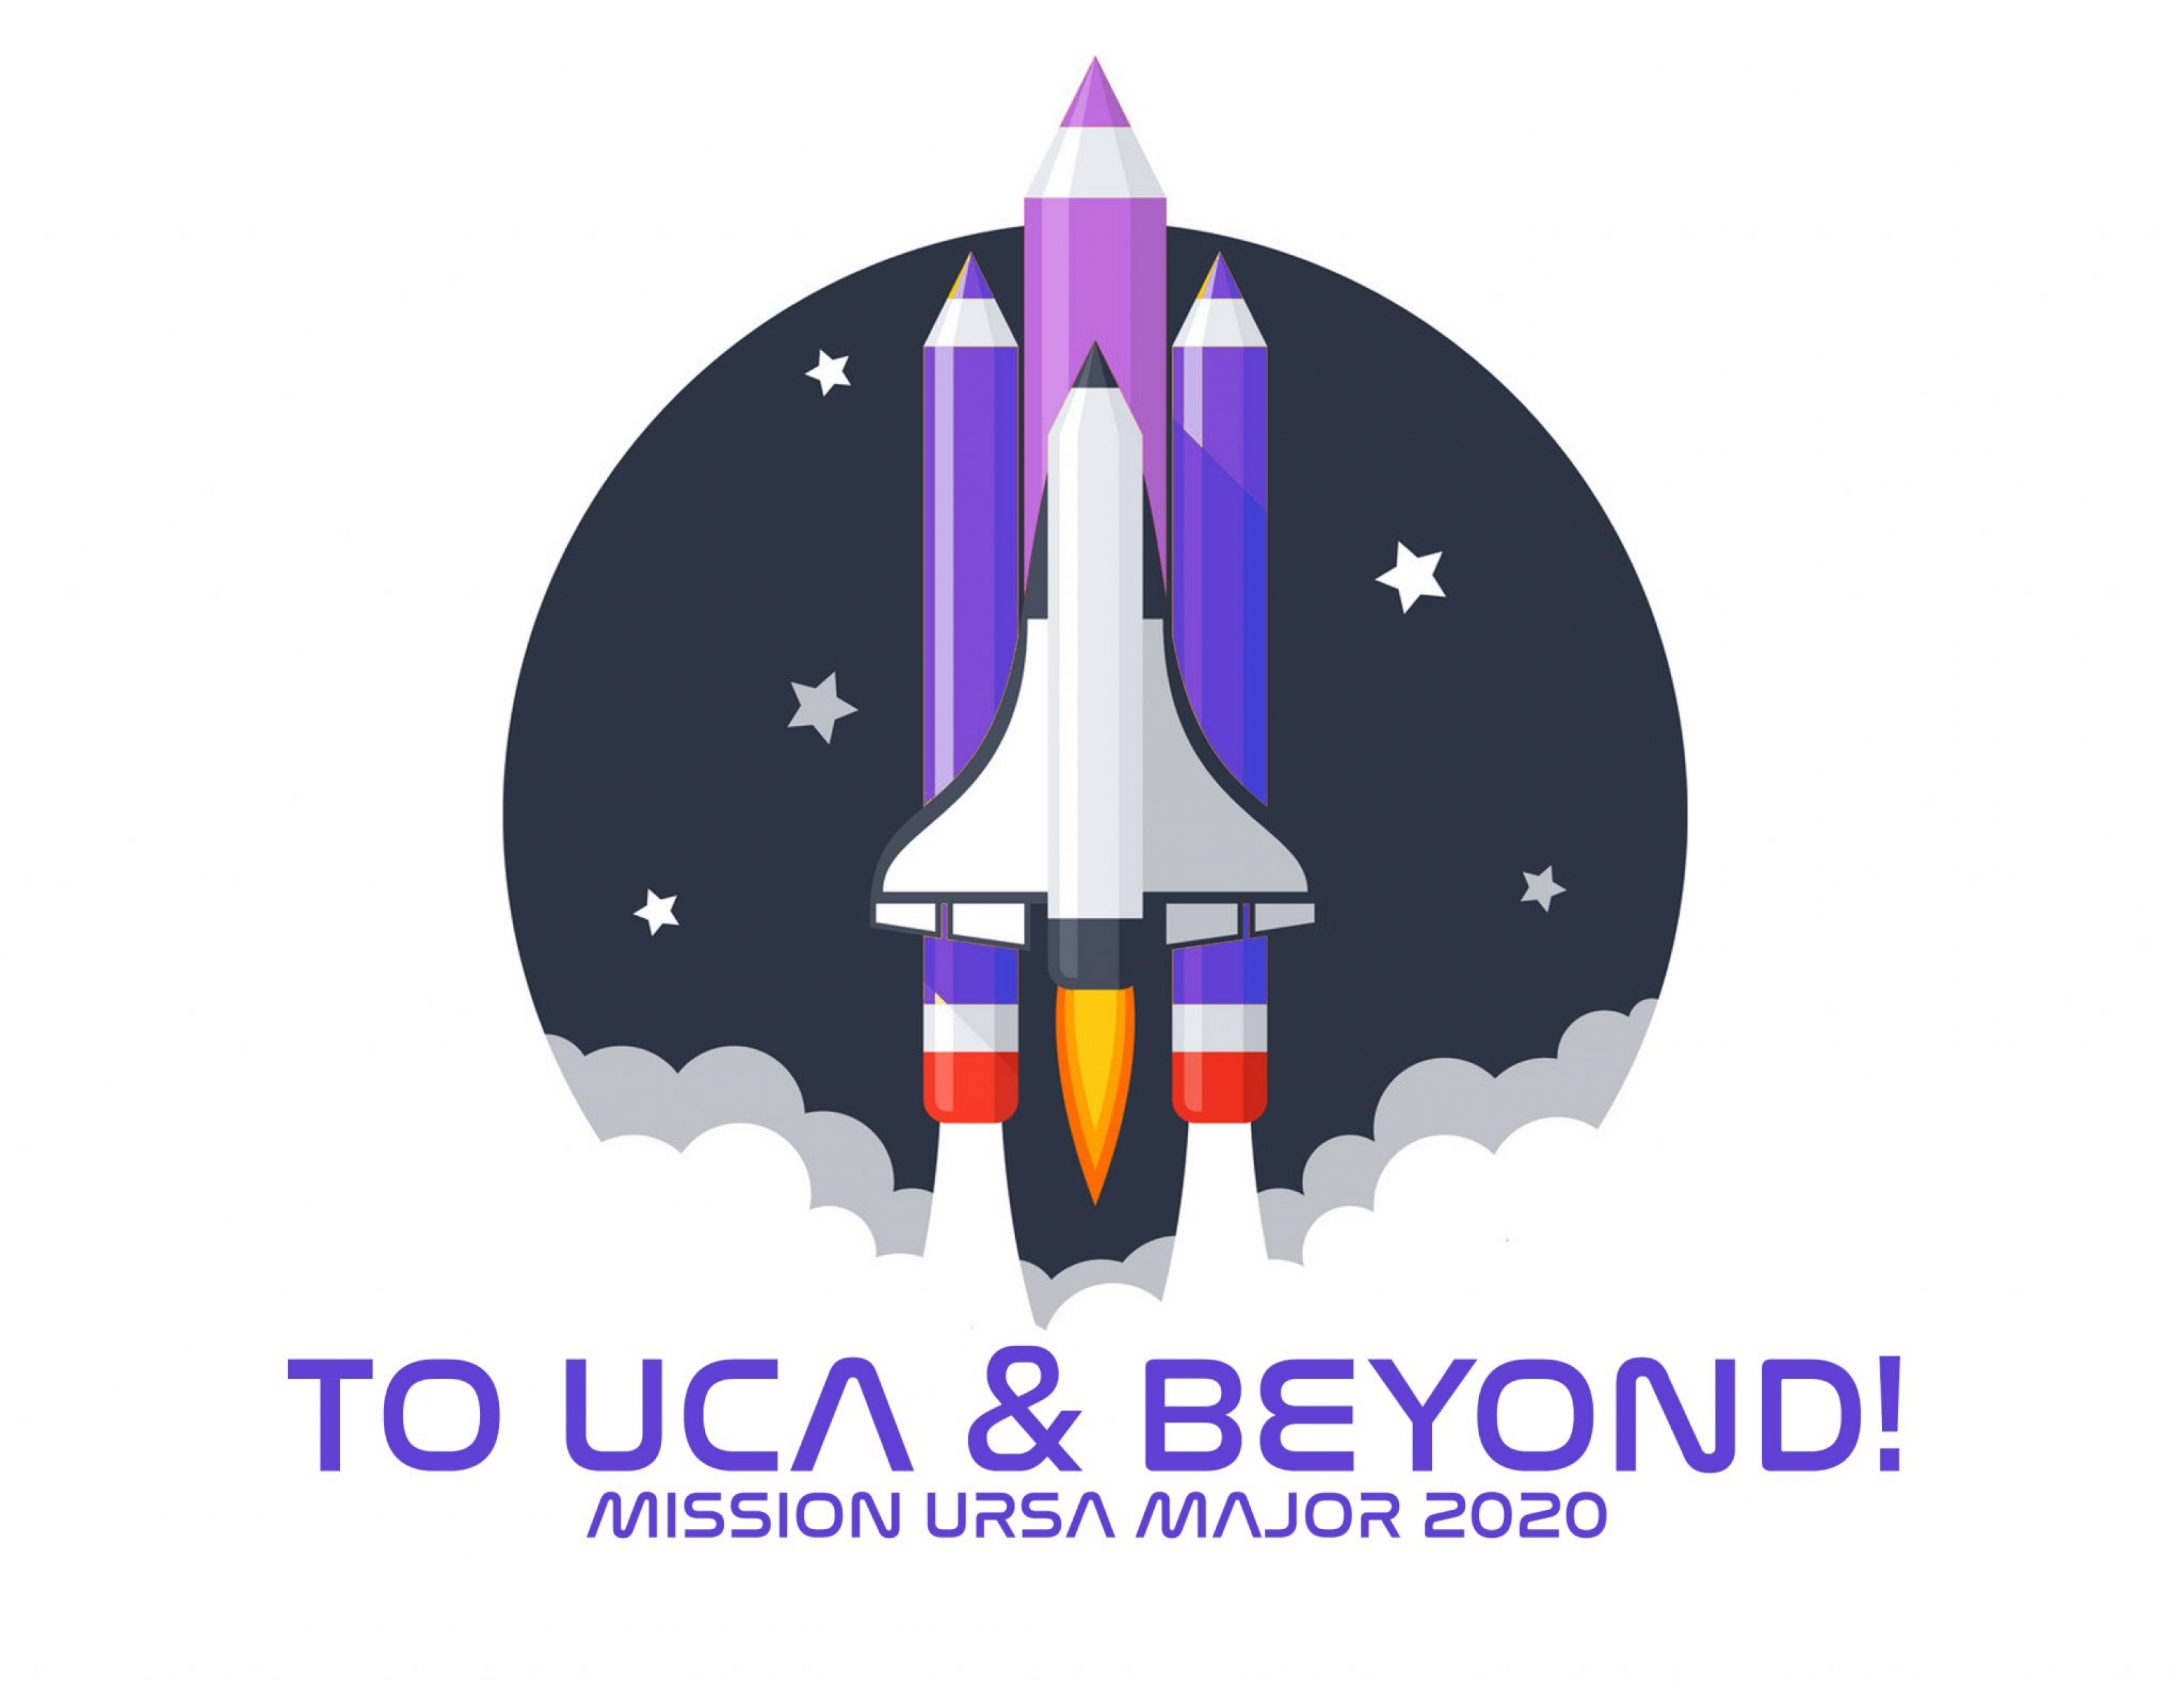 To UCA and Beyond